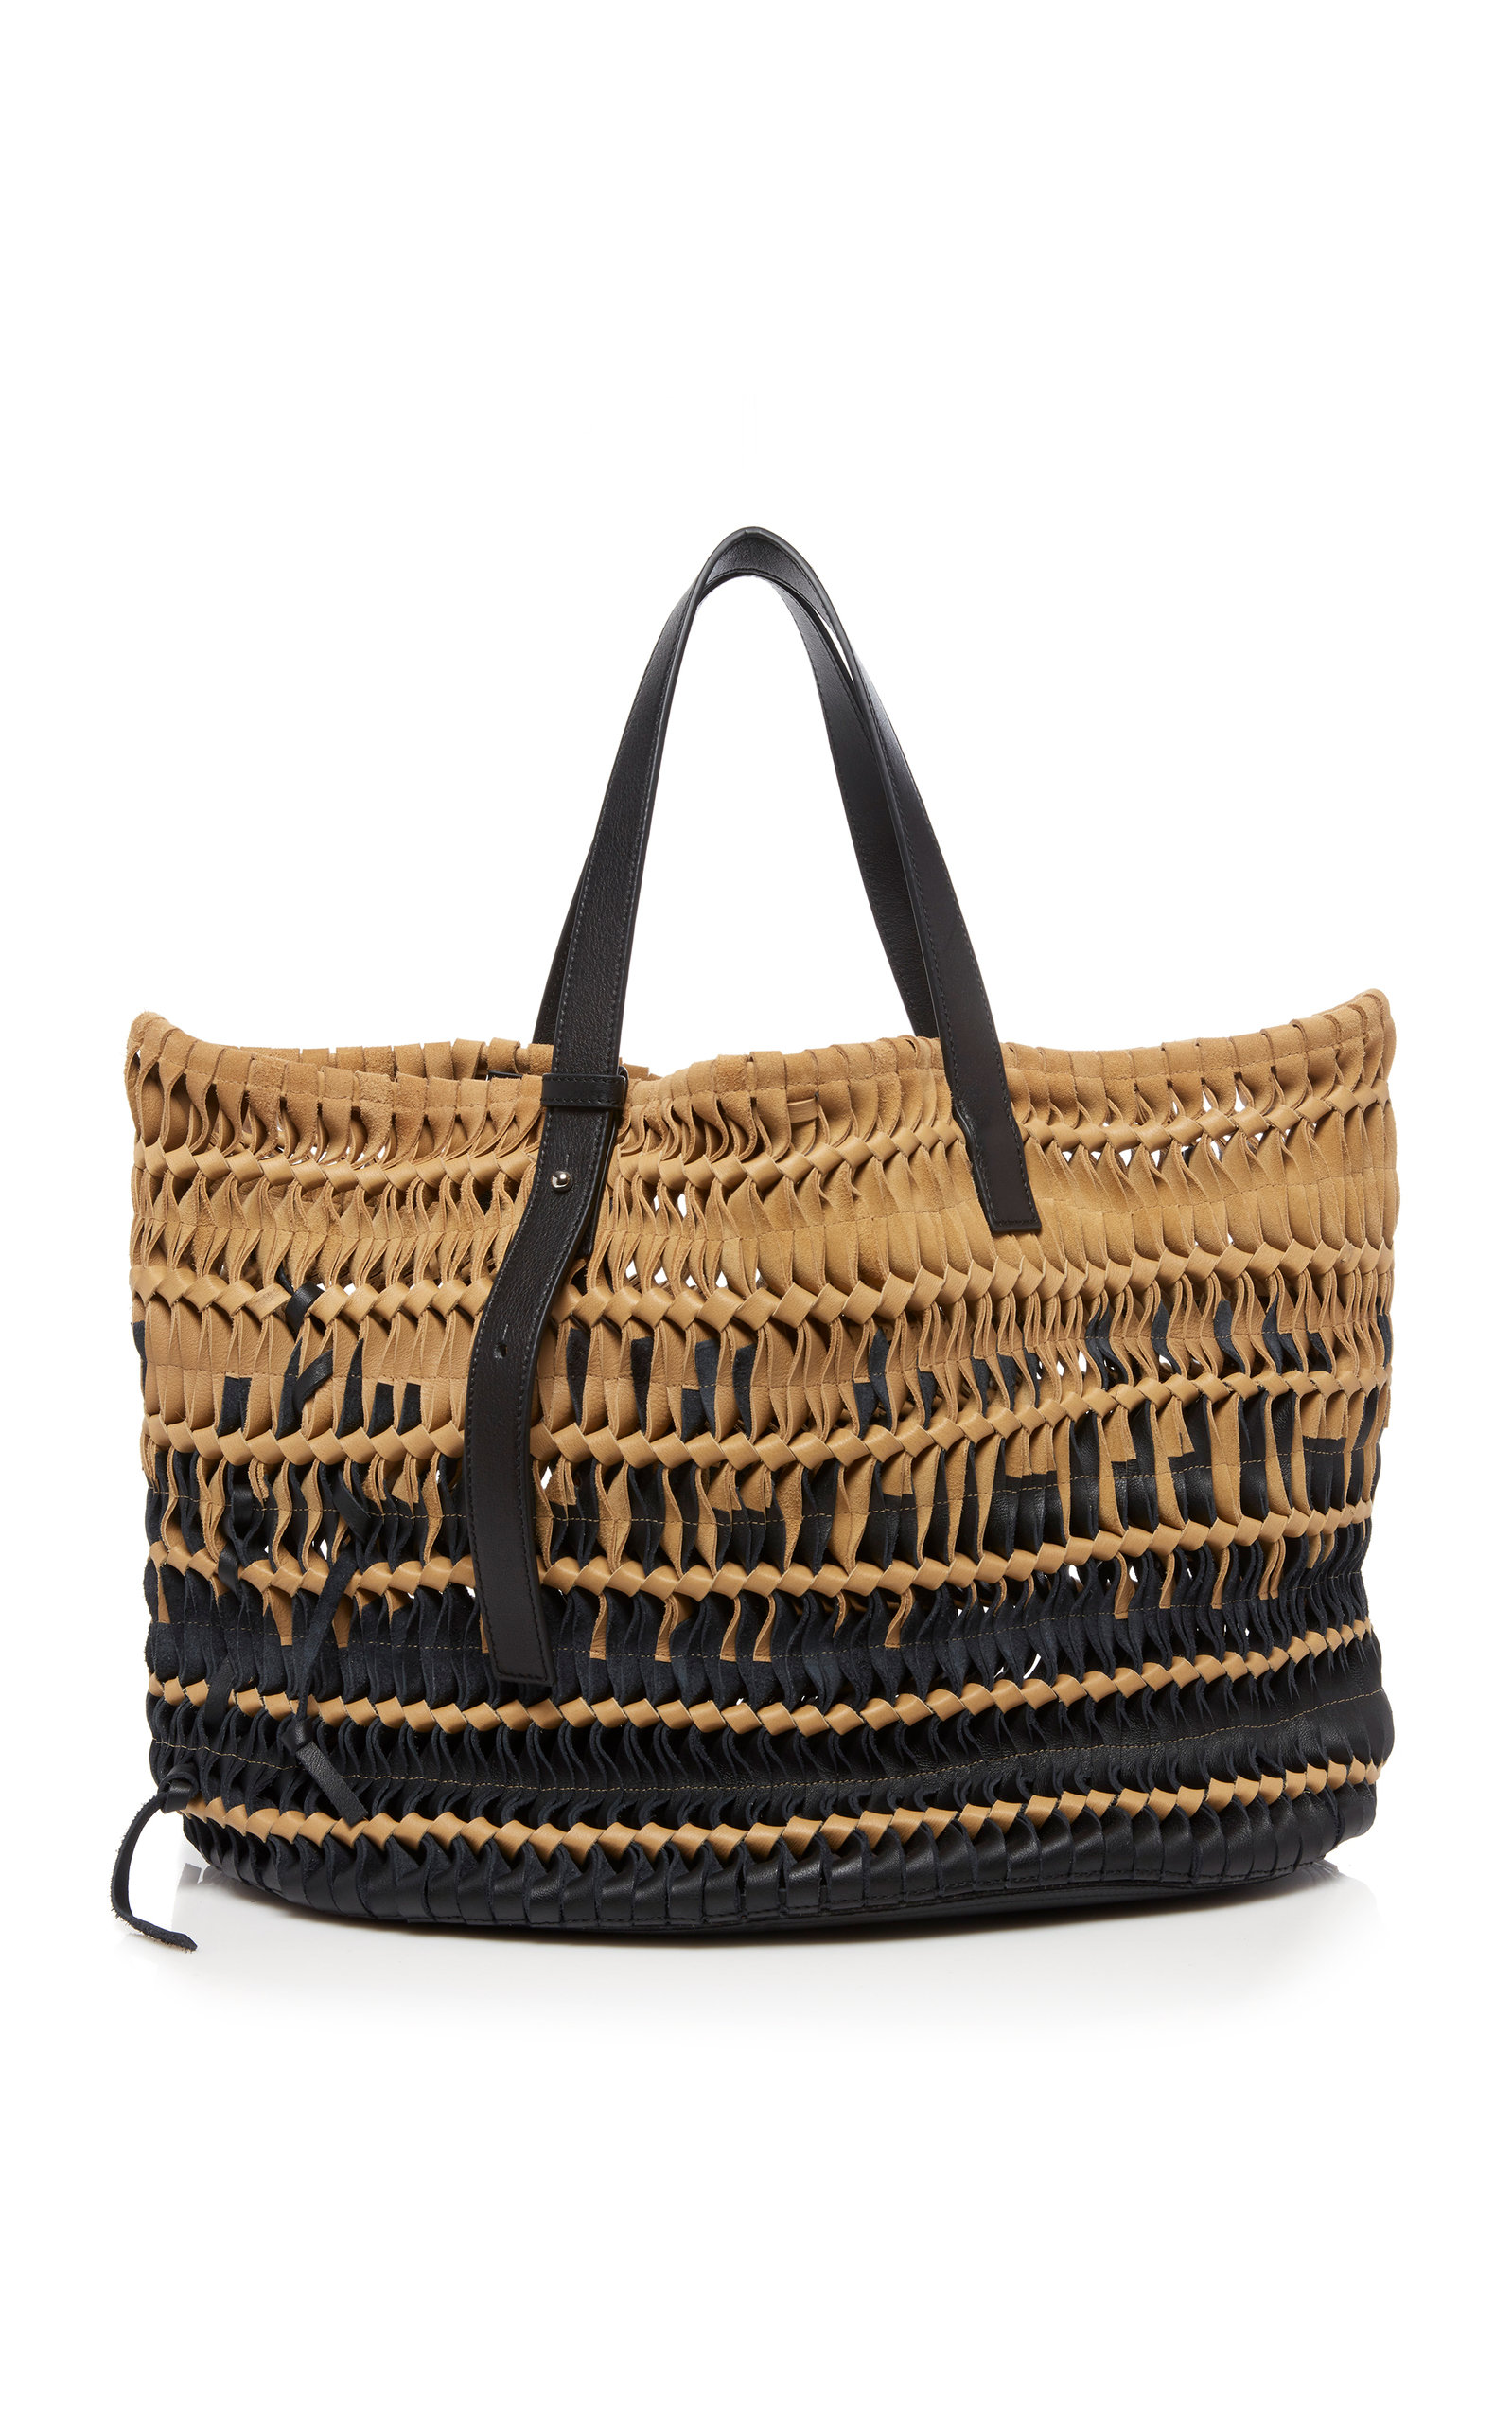 Woven Suede and Leather Tote Bag by Loewe